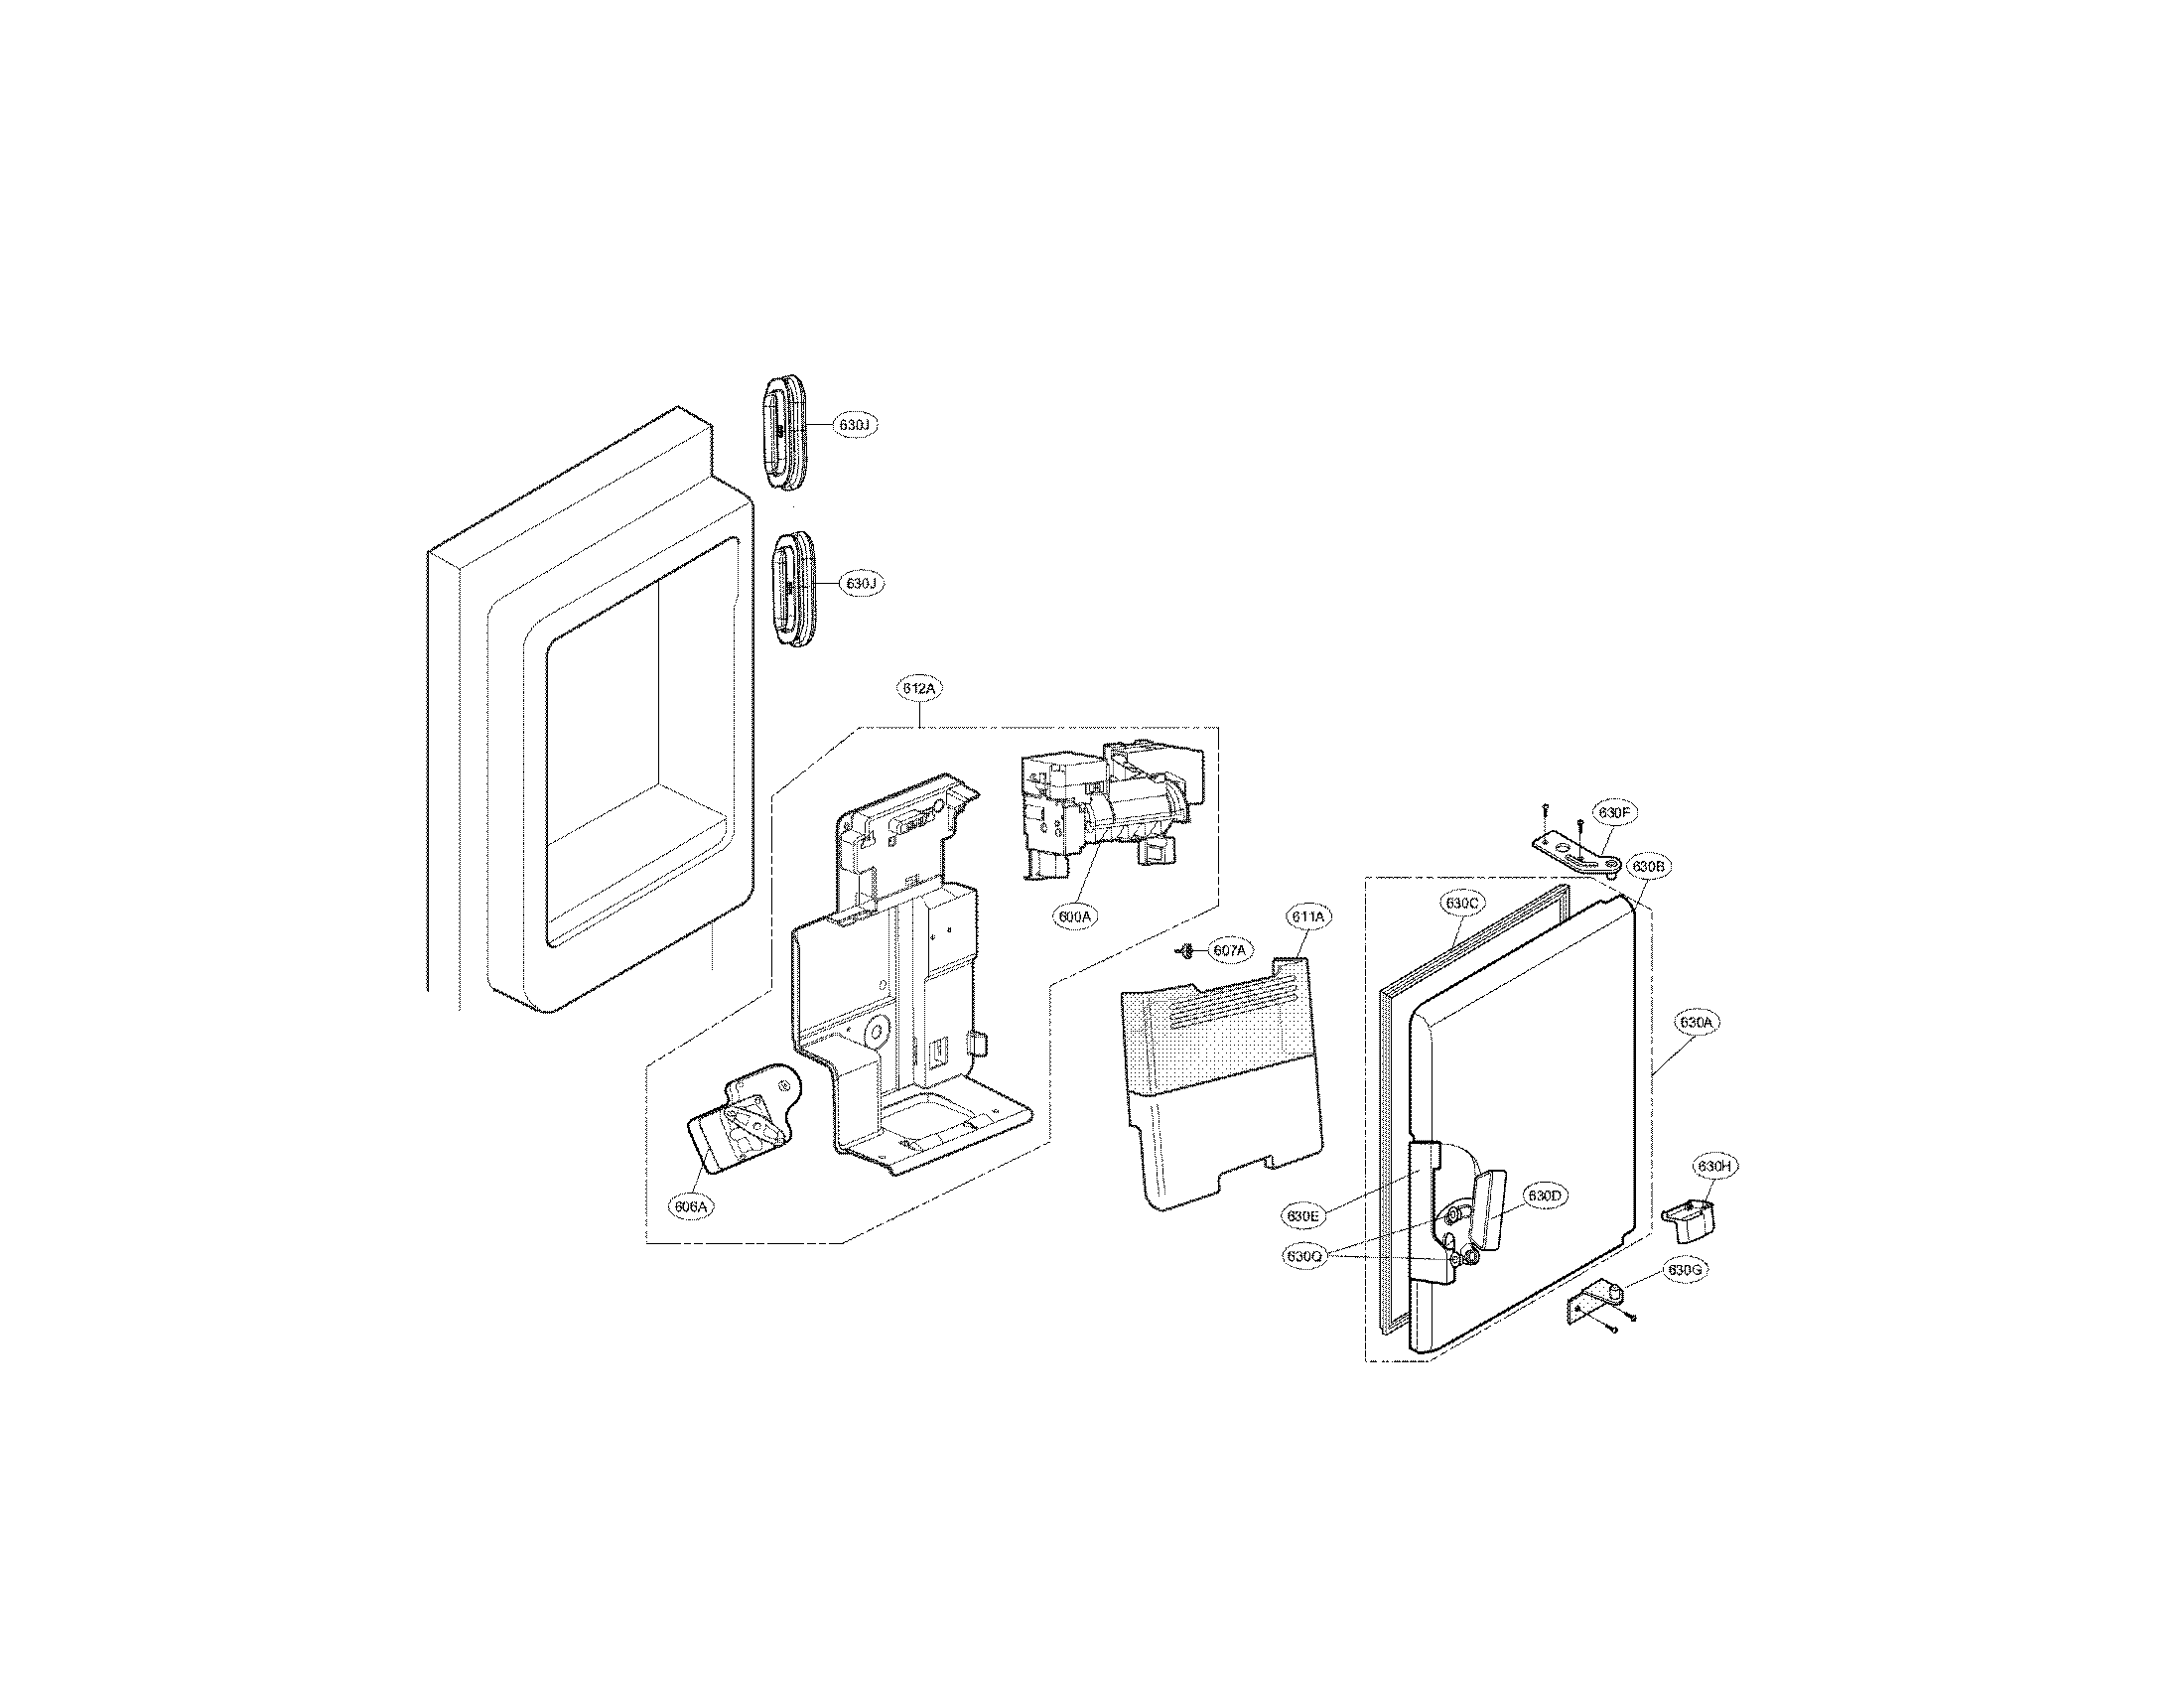 Haier Appliance Wiring Diagrams Fender Stratocaster Series